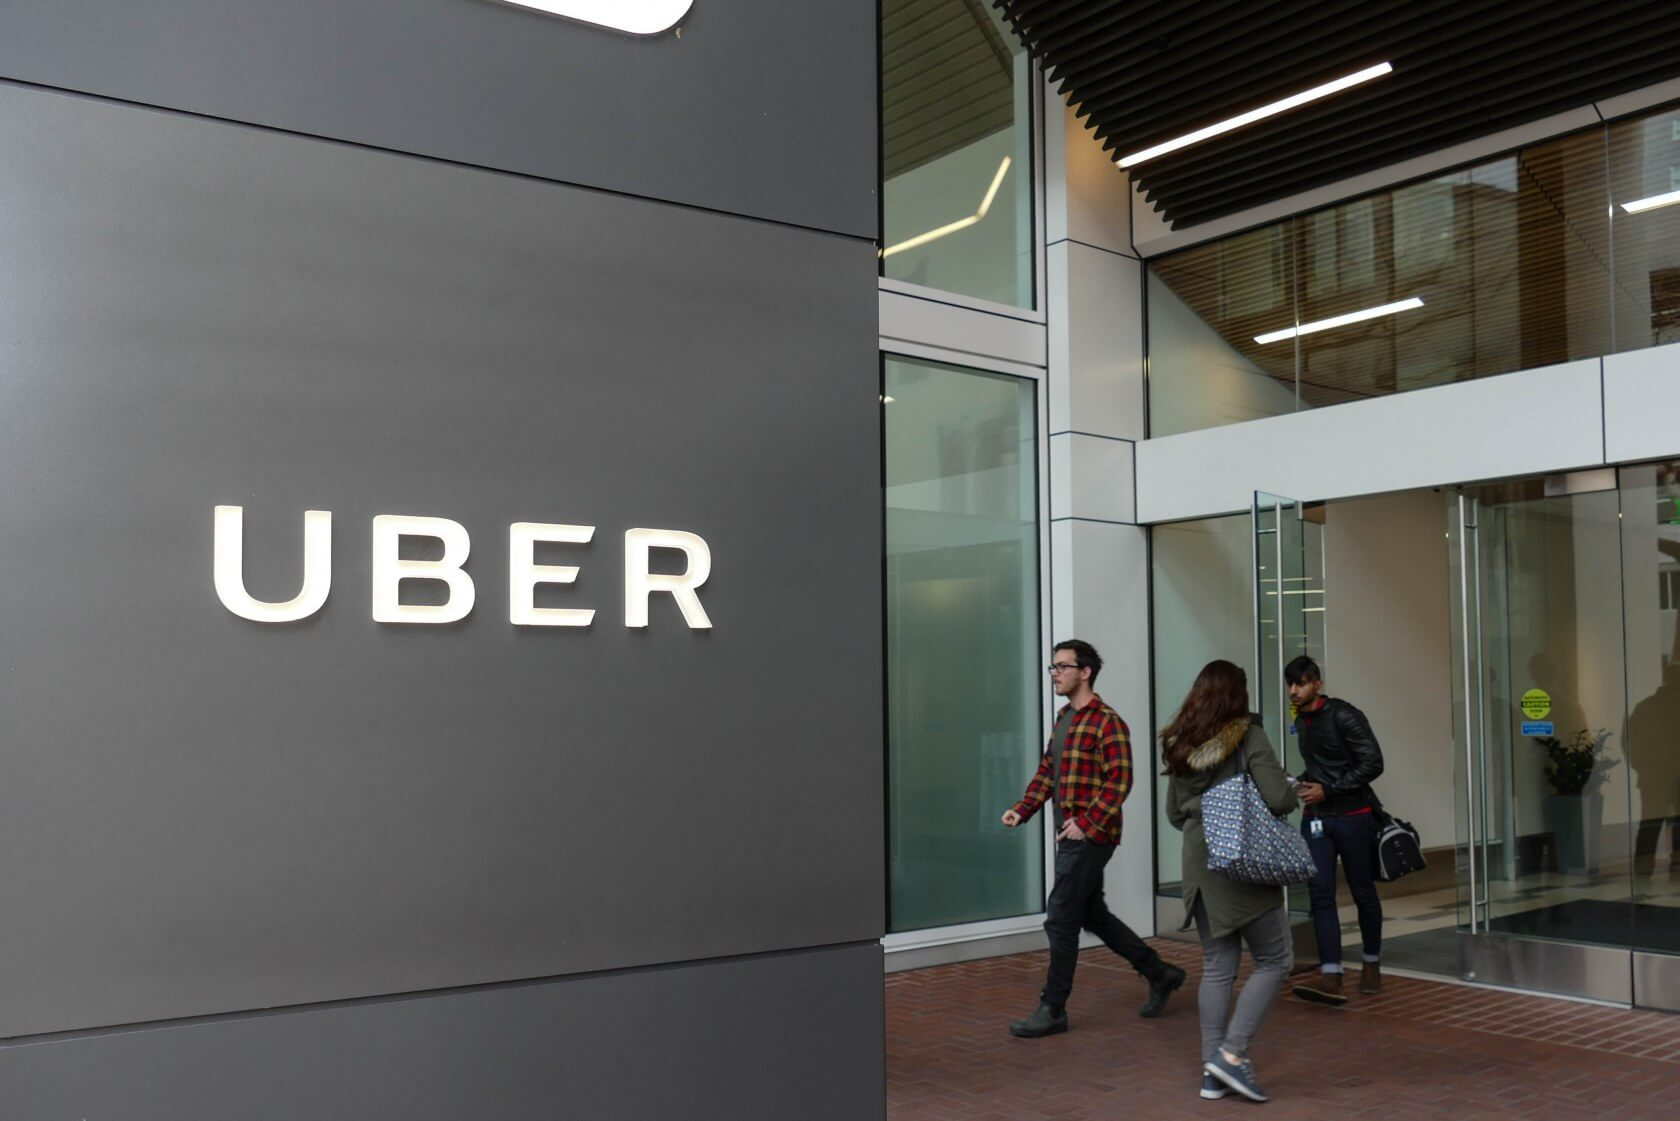 Uber finally hired a new CFO to try to stem losses before going public